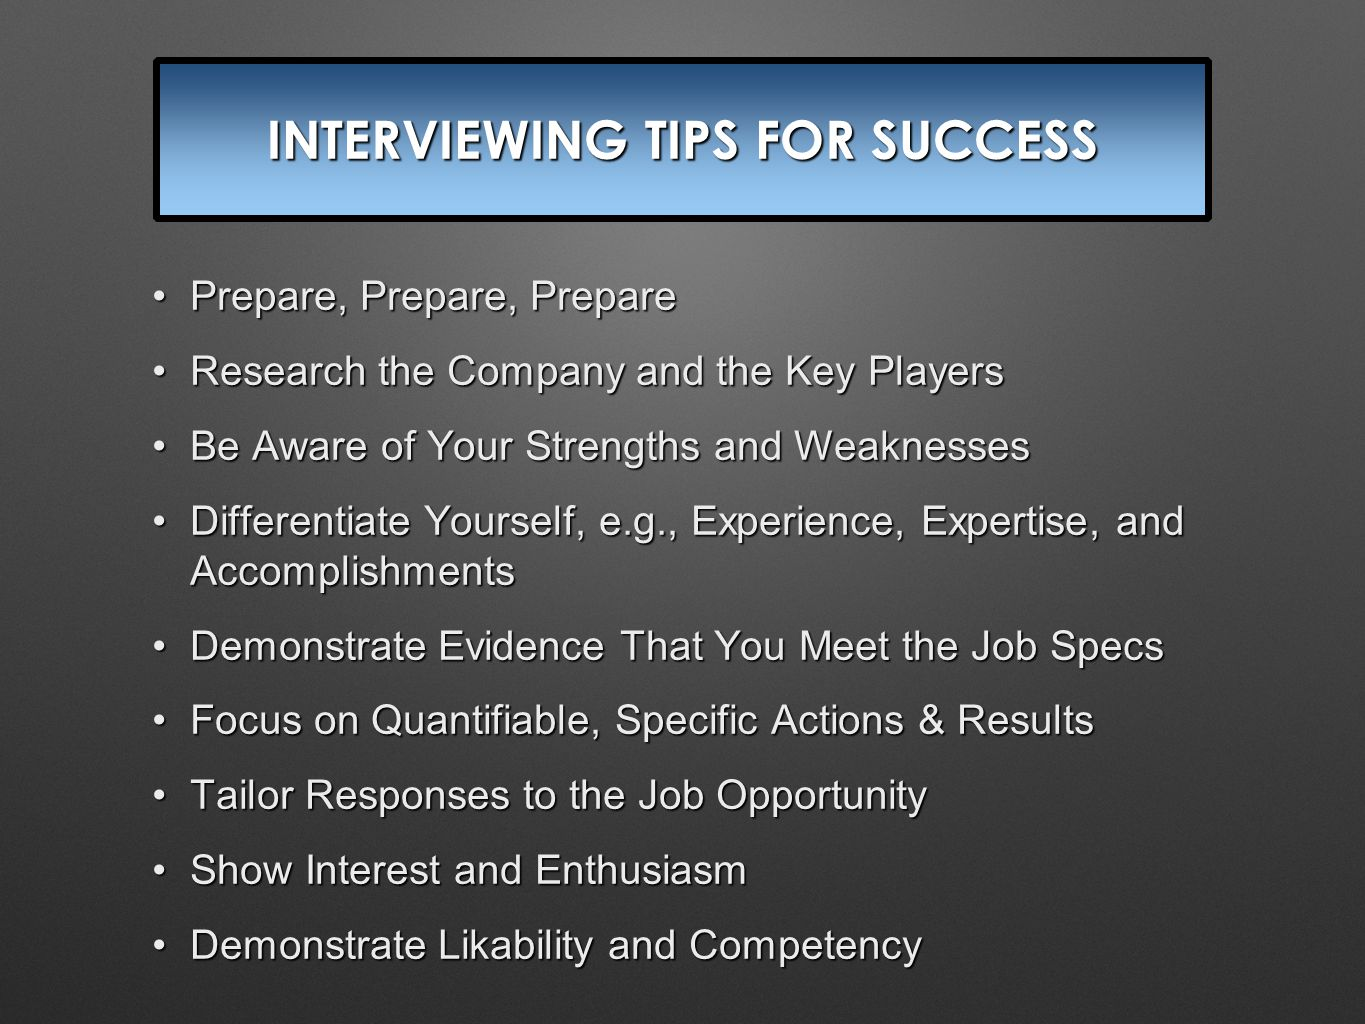 INTERVIEWING TIPS FOR SUCCESS Prepare, Prepare, PreparePrepare, Prepare, Prepare Research the Company and the Key PlayersResearch the Company and the Key Players Be Aware of Your Strengths and WeaknessesBe Aware of Your Strengths and Weaknesses Differentiate Yourself, e.g., Experience, Expertise, and AccomplishmentsDifferentiate Yourself, e.g., Experience, Expertise, and Accomplishments Demonstrate Evidence That You Meet the Job SpecsDemonstrate Evidence That You Meet the Job Specs Focus on Quantifiable, Specific Actions & ResultsFocus on Quantifiable, Specific Actions & Results Tailor Responses to the Job OpportunityTailor Responses to the Job Opportunity Show Interest and EnthusiasmShow Interest and Enthusiasm Demonstrate Likability and CompetencyDemonstrate Likability and Competency